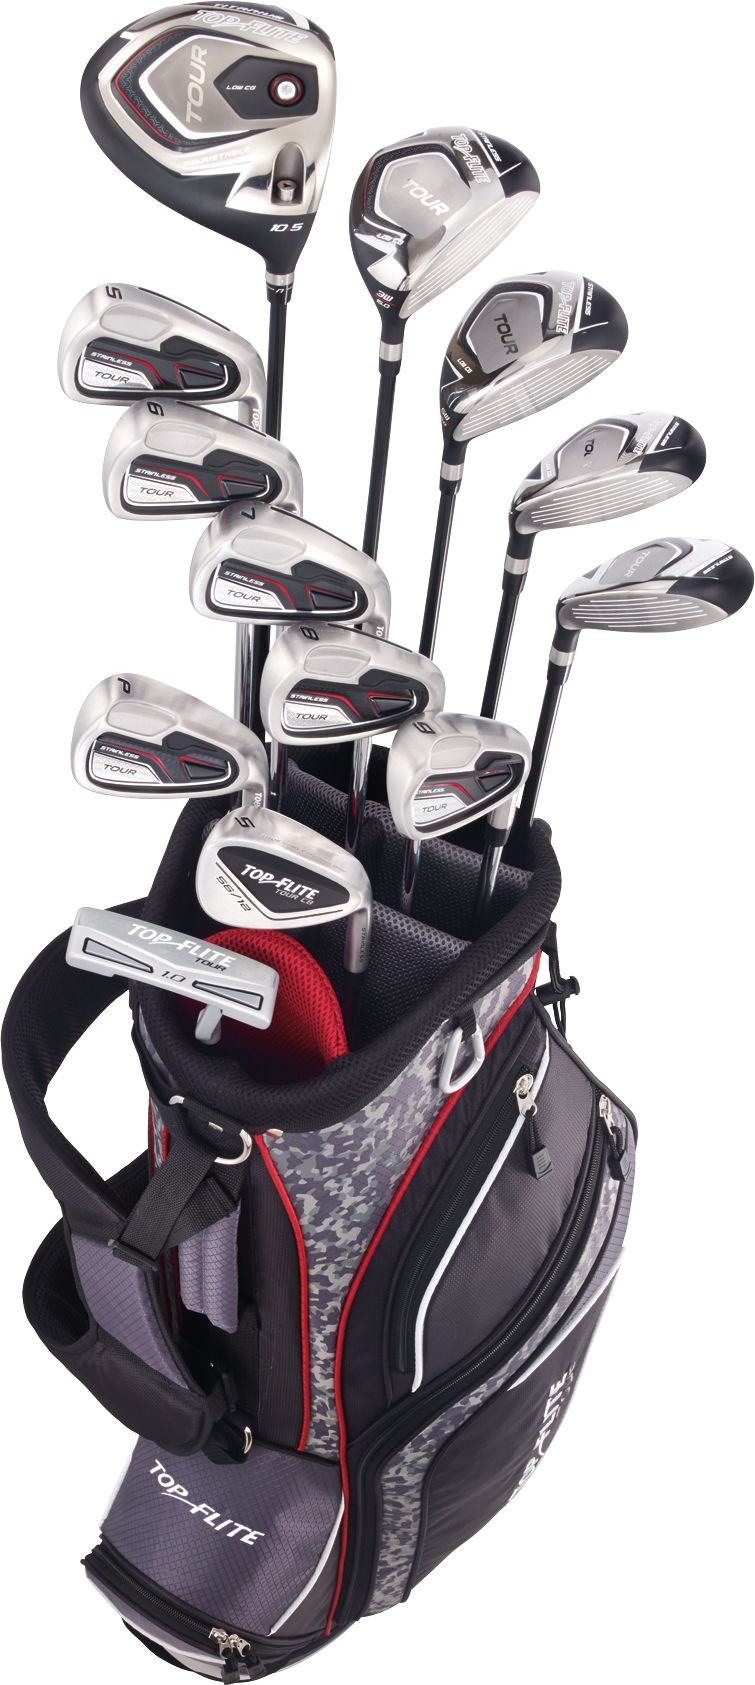 Top Flite Tour Complete Set Golf Galaxy